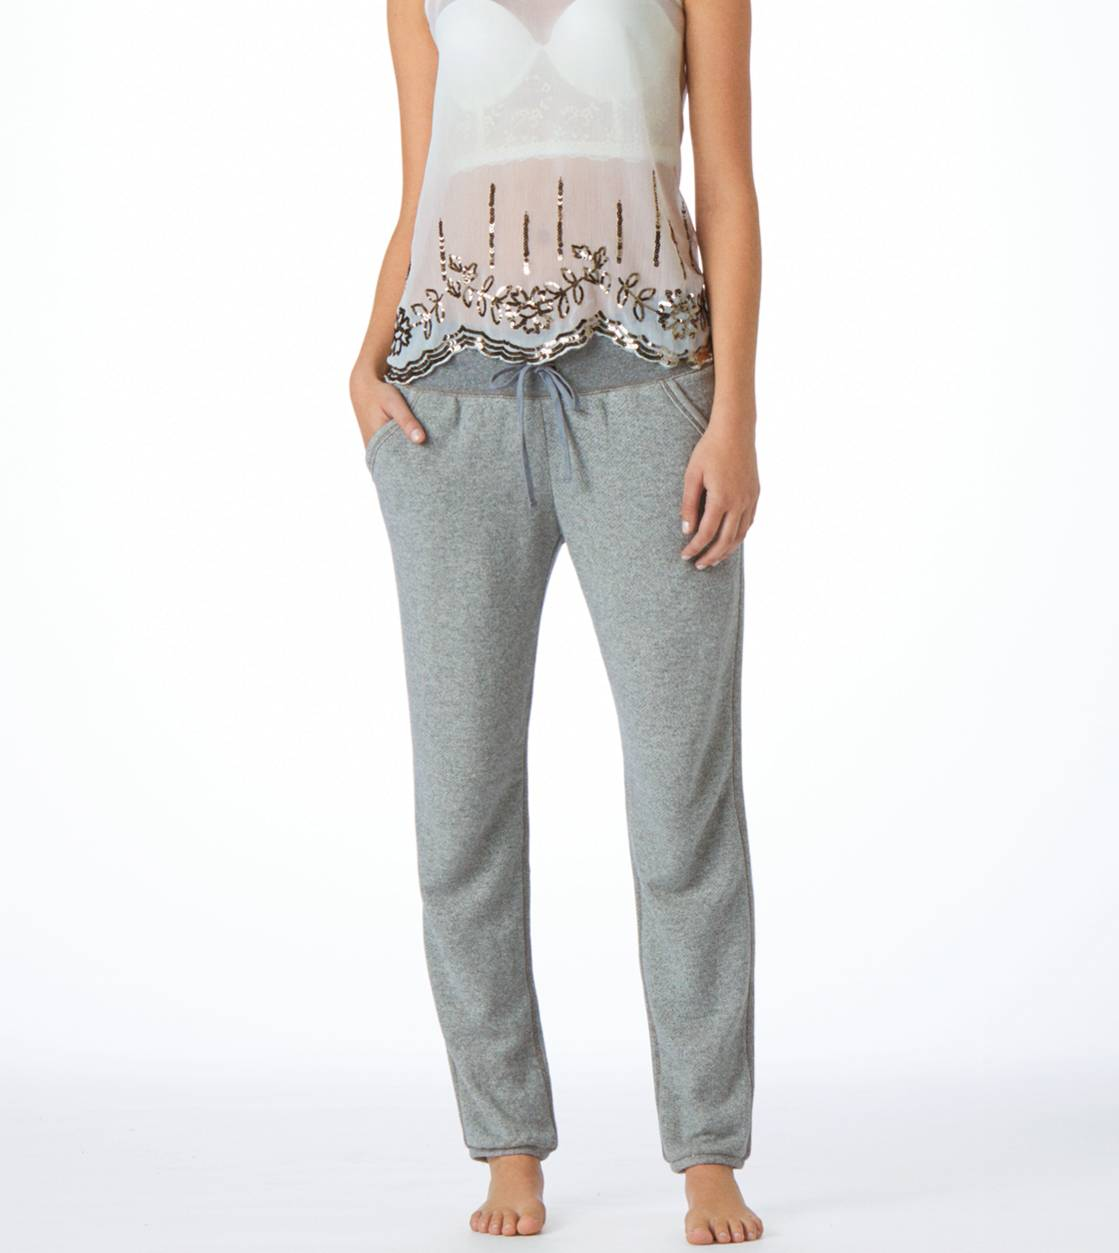 Dark Heather Grey Aerie Classic Banded Bottom Sweatpant